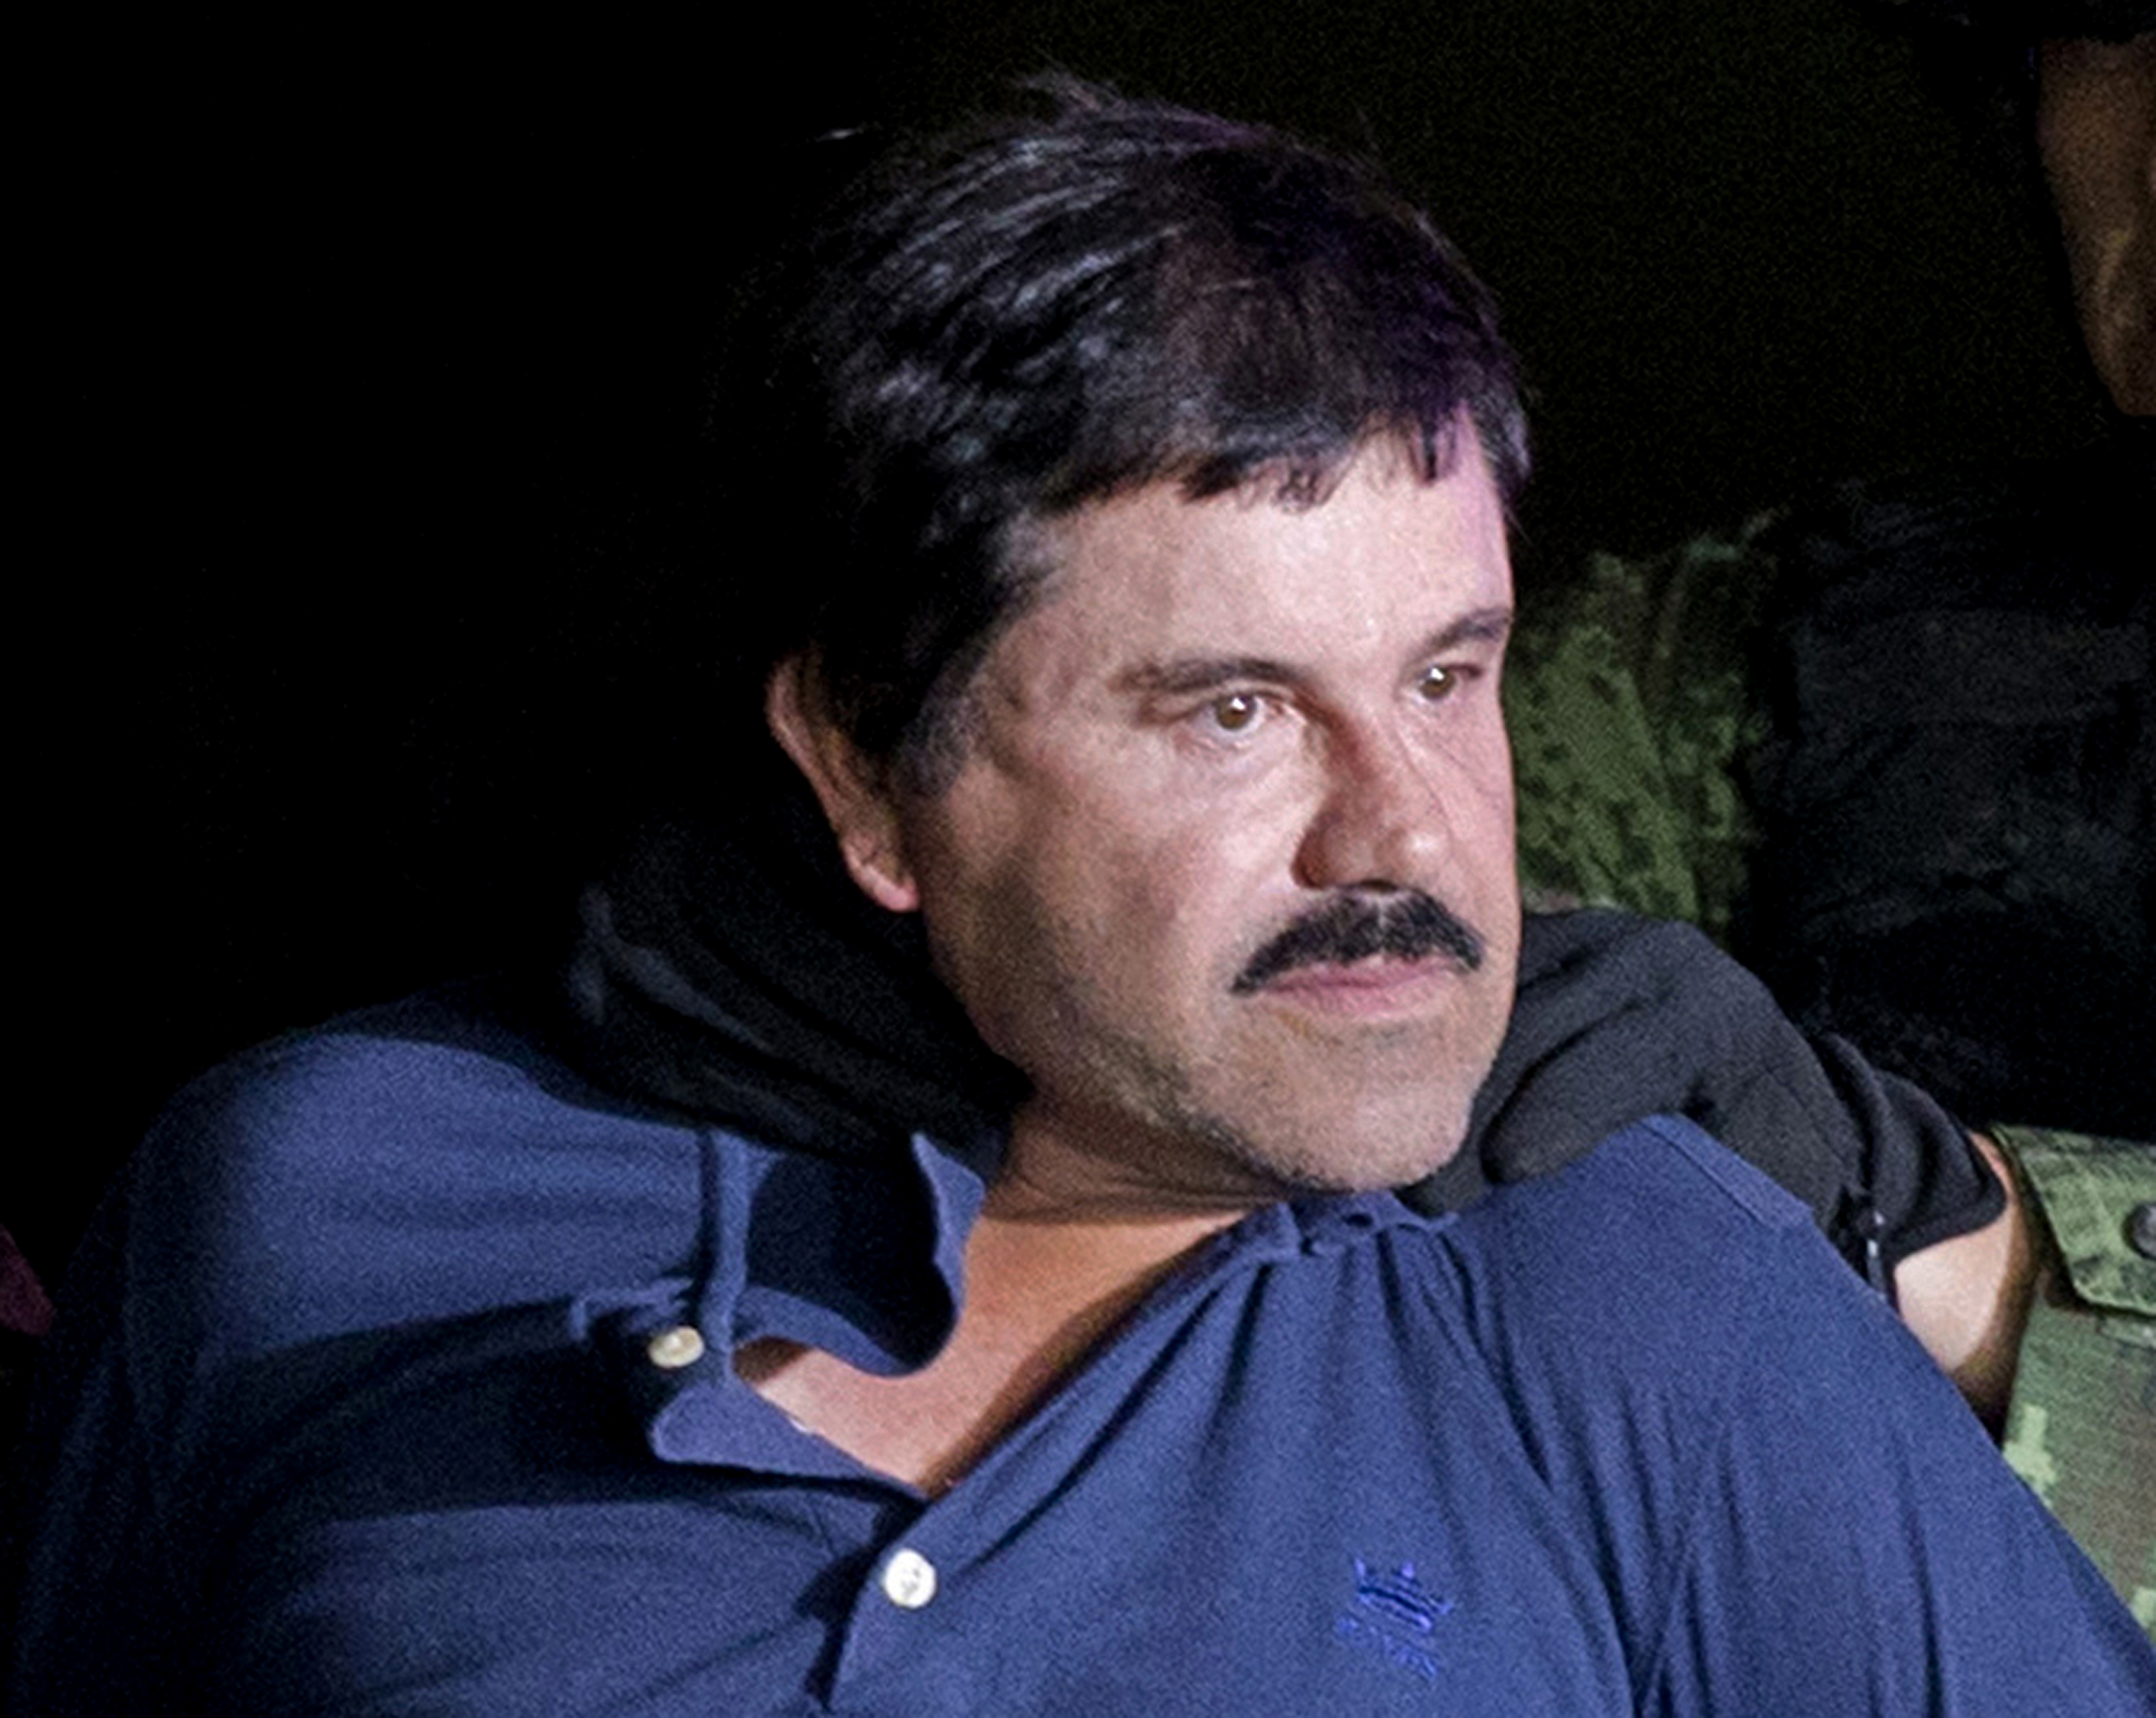 """Drug lord Joaquin """"El Chapo"""" Guzmán Loera in January 2016 in Mexico City as he was escorted by Mexican soldiers following his recapture."""